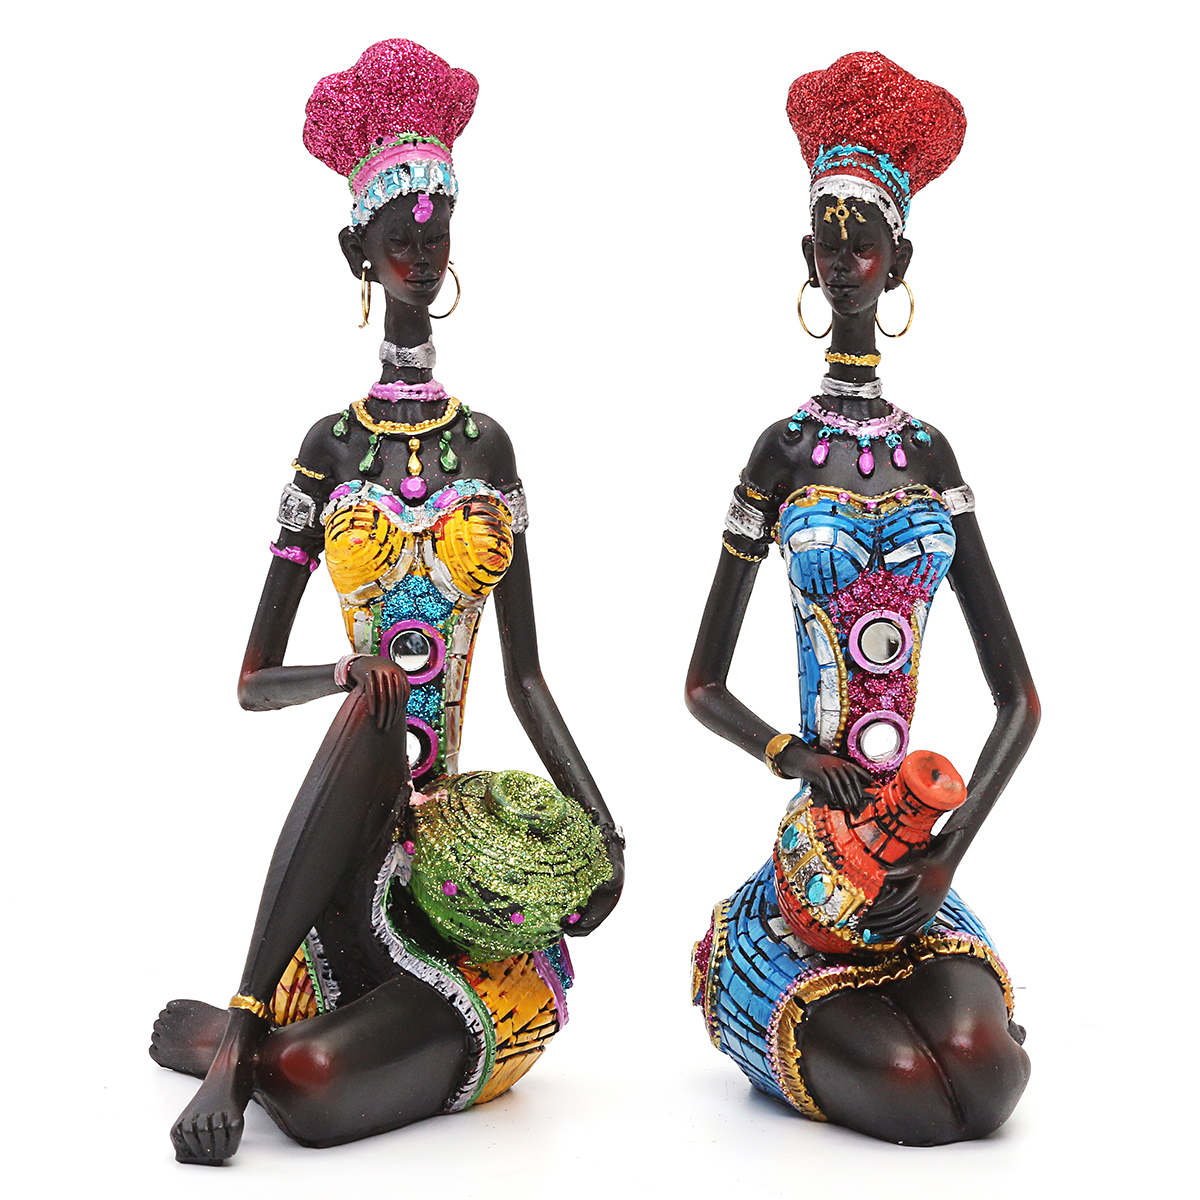 Resin Figurine Craft African Women Beauty Lady Statue Decorative Home Hardware